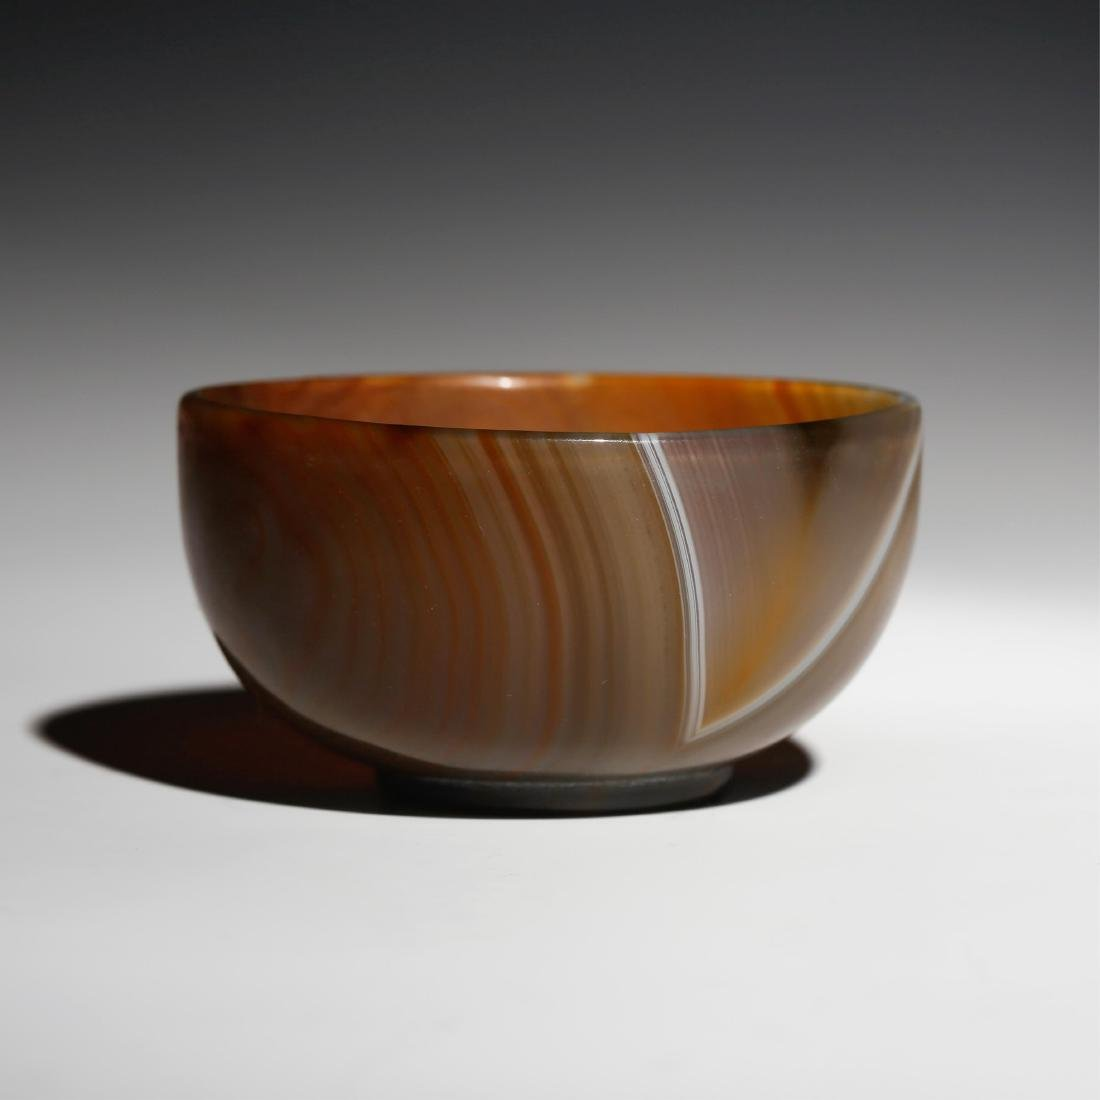 CHINESE AGATE BOWL, QING DYNASTY